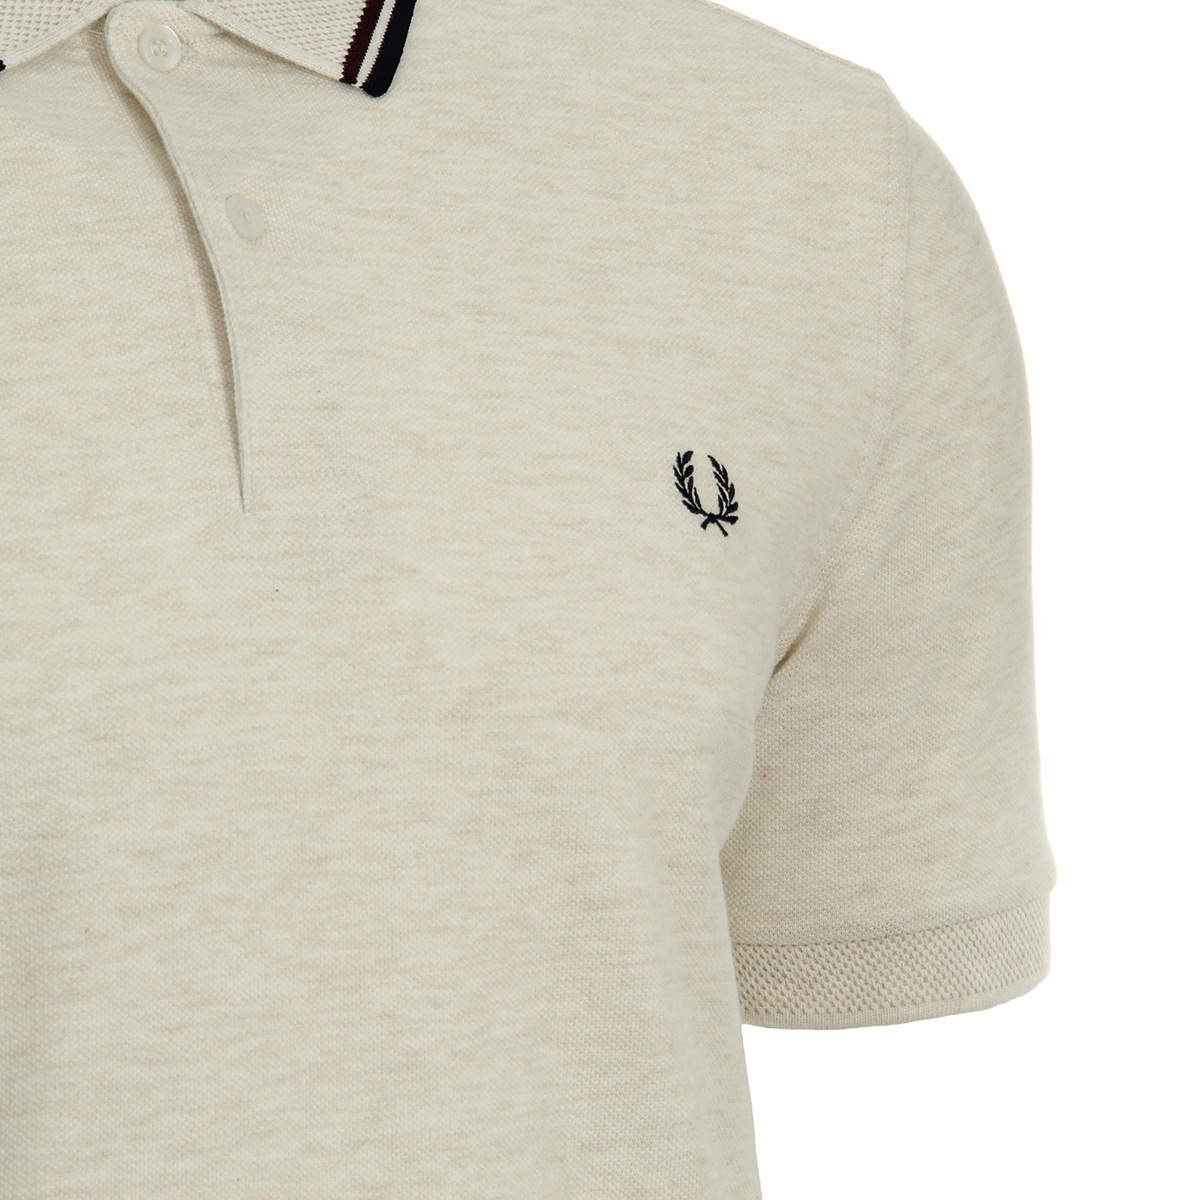 Fred Perry Textured Collar Pique Shirt M3605F90, Polos homme